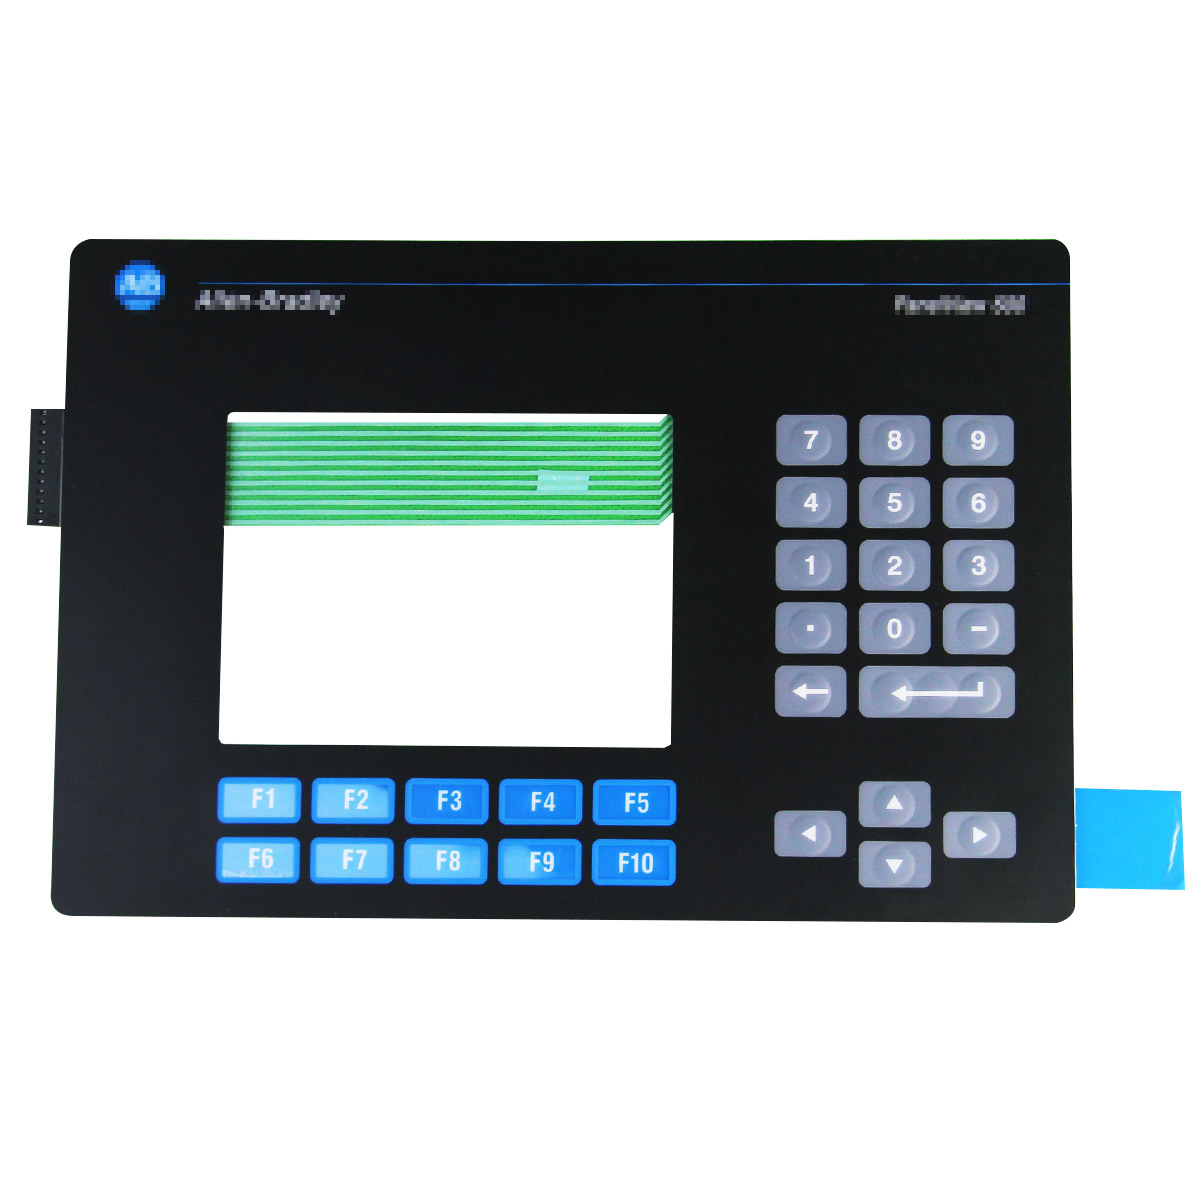 New For AB PanelView 600  2711-B6C1 2711-B6C1L1 2711-B6C20 2711-B6C20L1 Membrane Keypad Operation Panel Protective film new industrial membrane switch keypad 2711p k10c4d2 for ab allen bradley panelview plus 1000